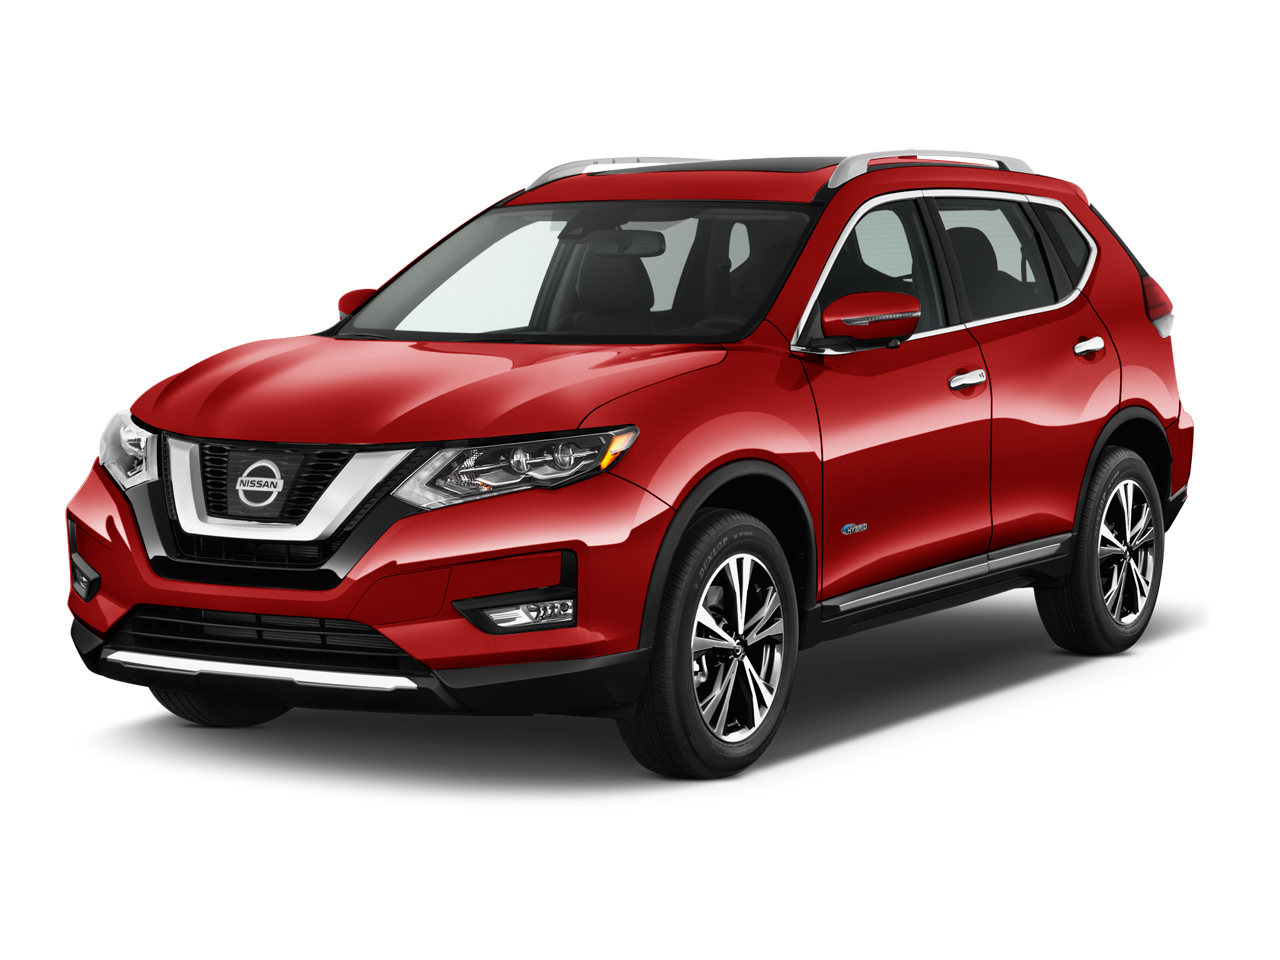 new 2017 nissan rogue sl near fredericksburg va nissan usa direct. Black Bedroom Furniture Sets. Home Design Ideas